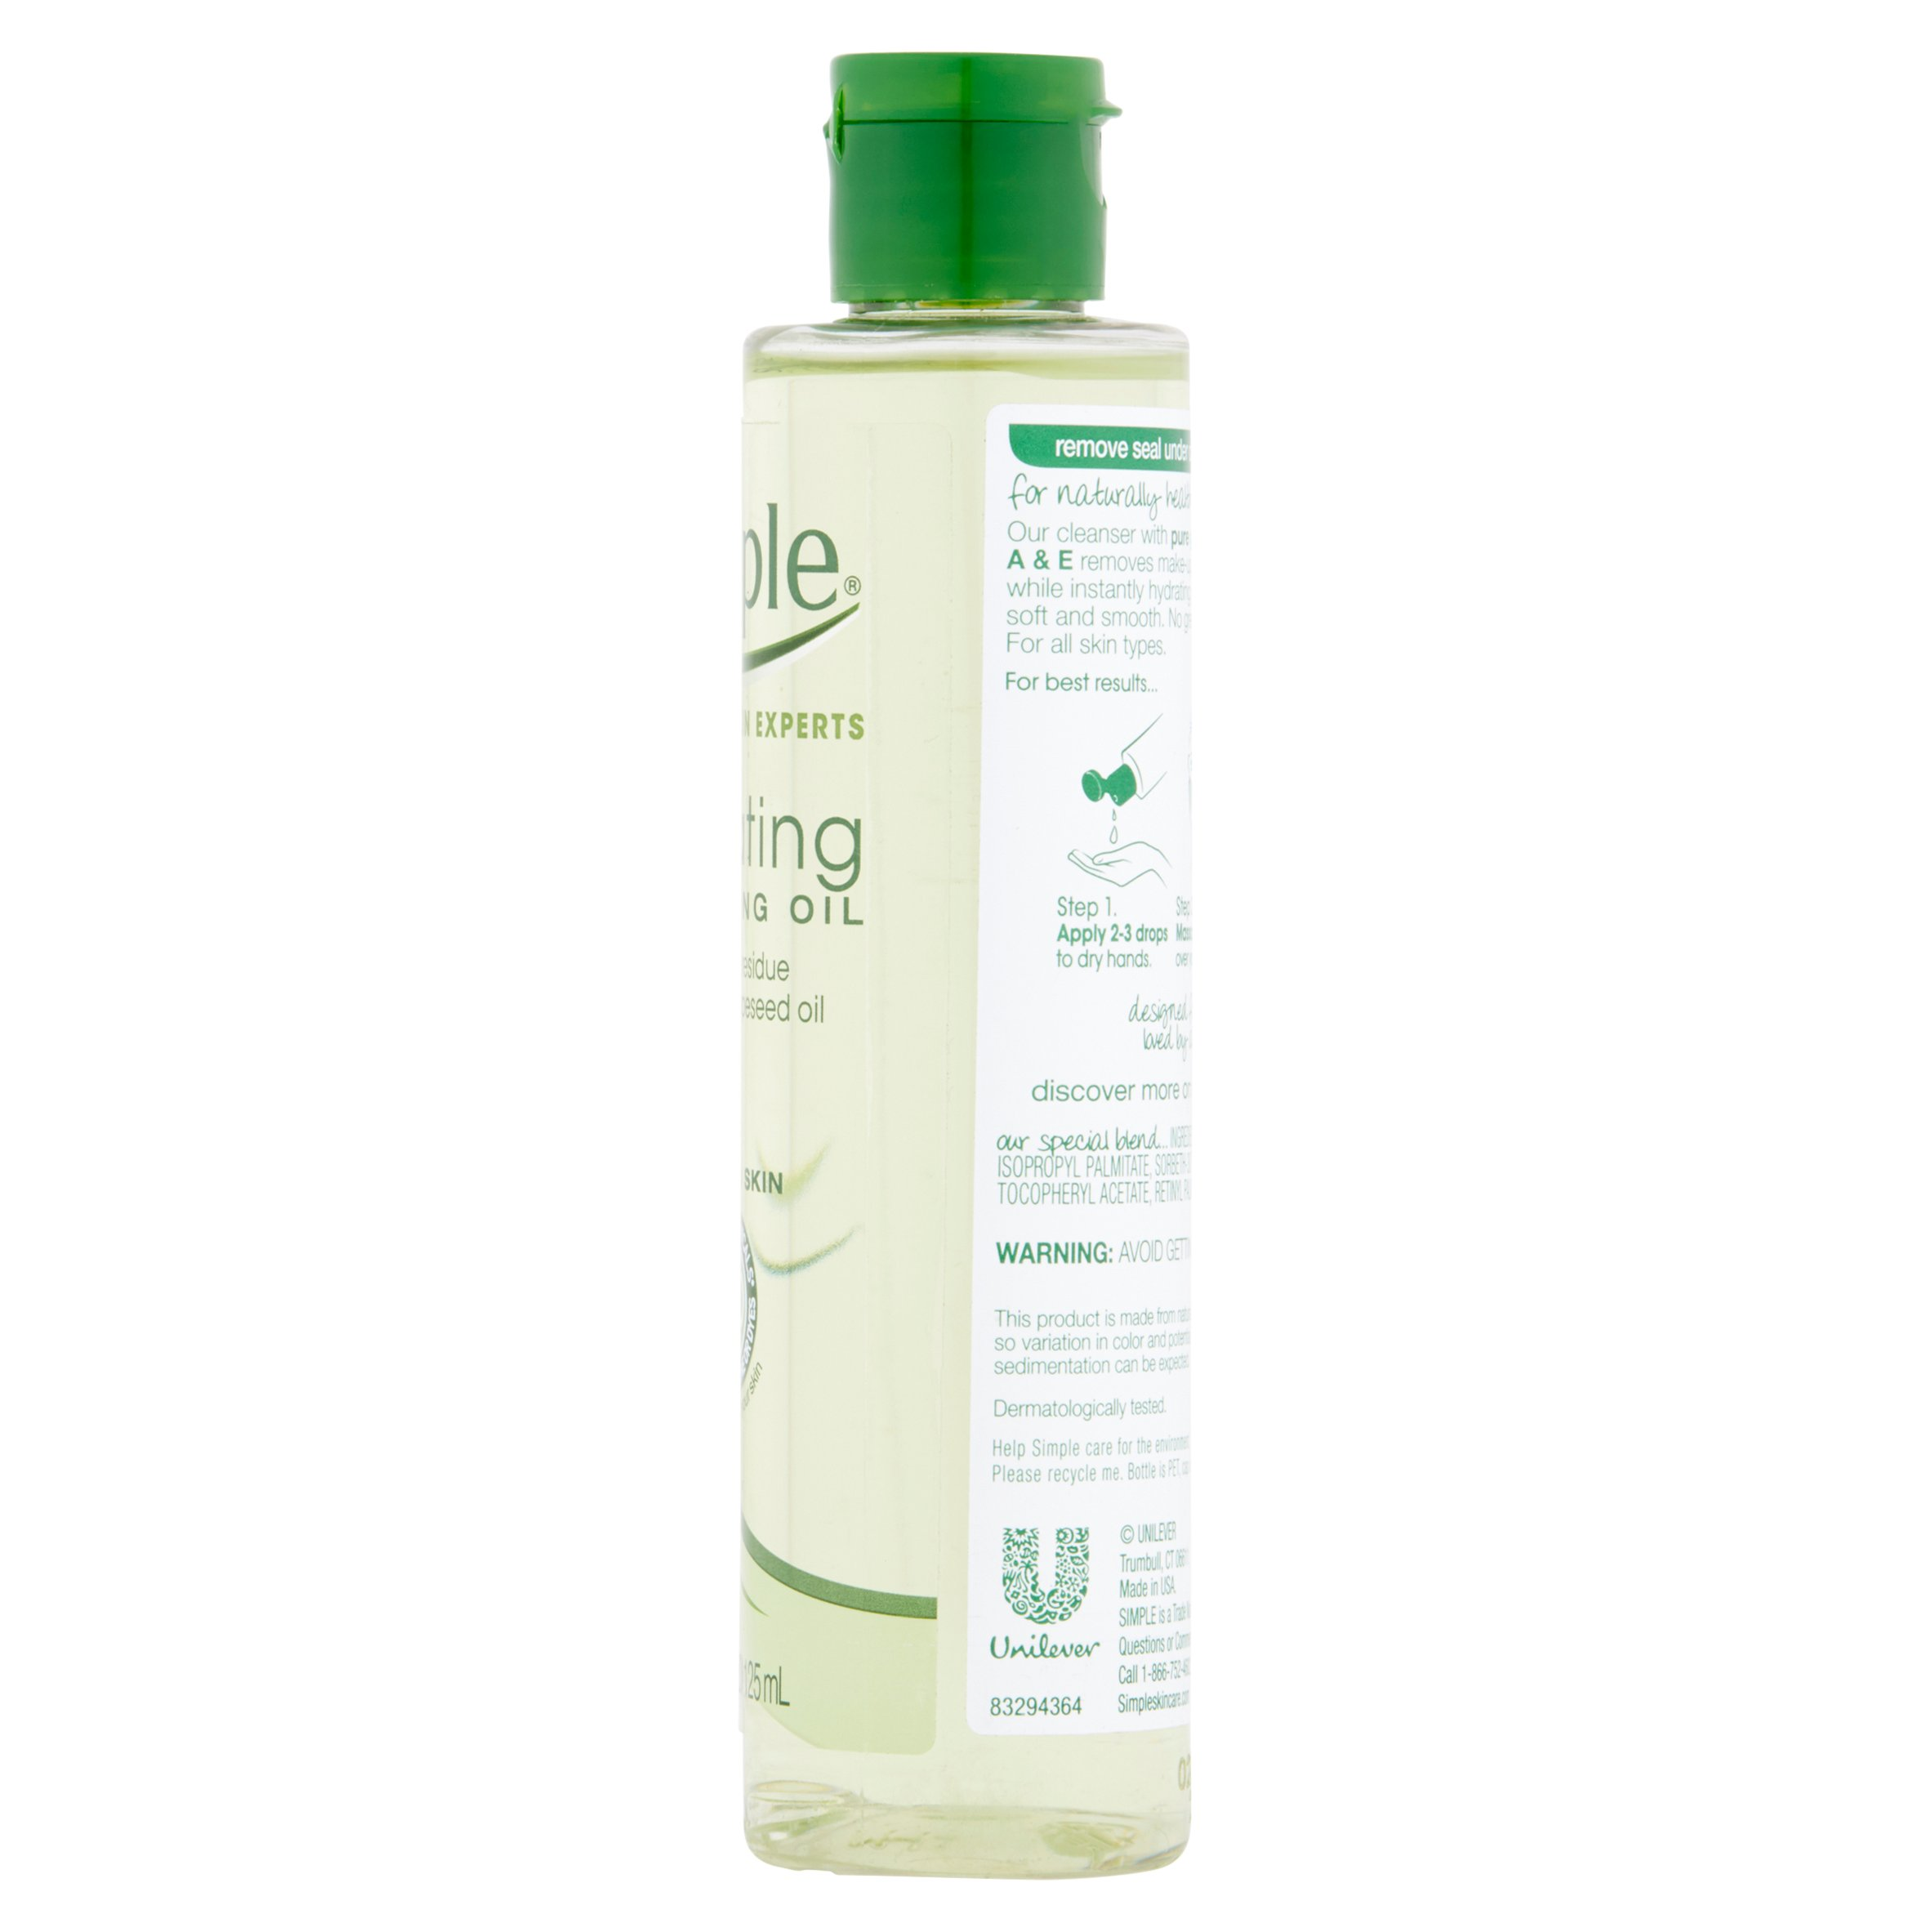 Simple Sensitive Skin Experts Hydrating Cleansing Oil 4 2 Fl Oz